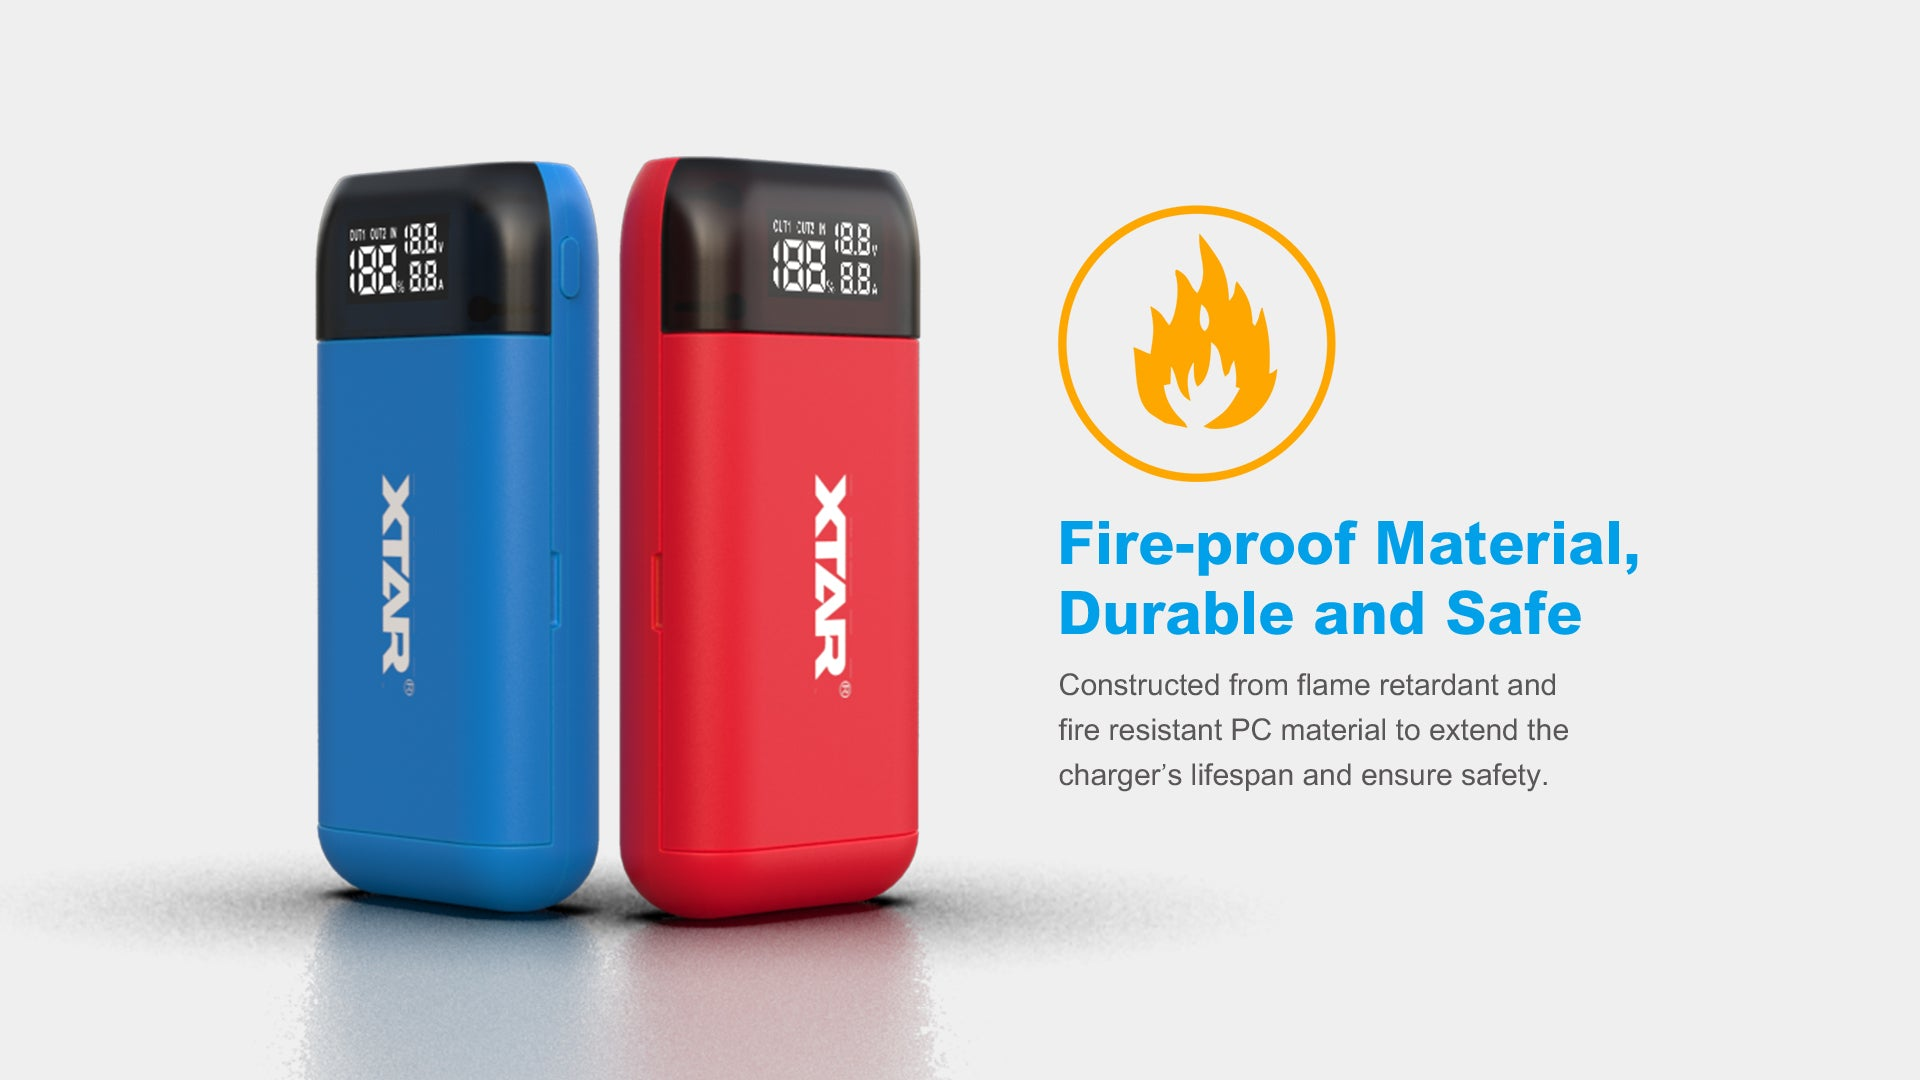 Xtar PBS2 Red Battery Charger and Powerbank